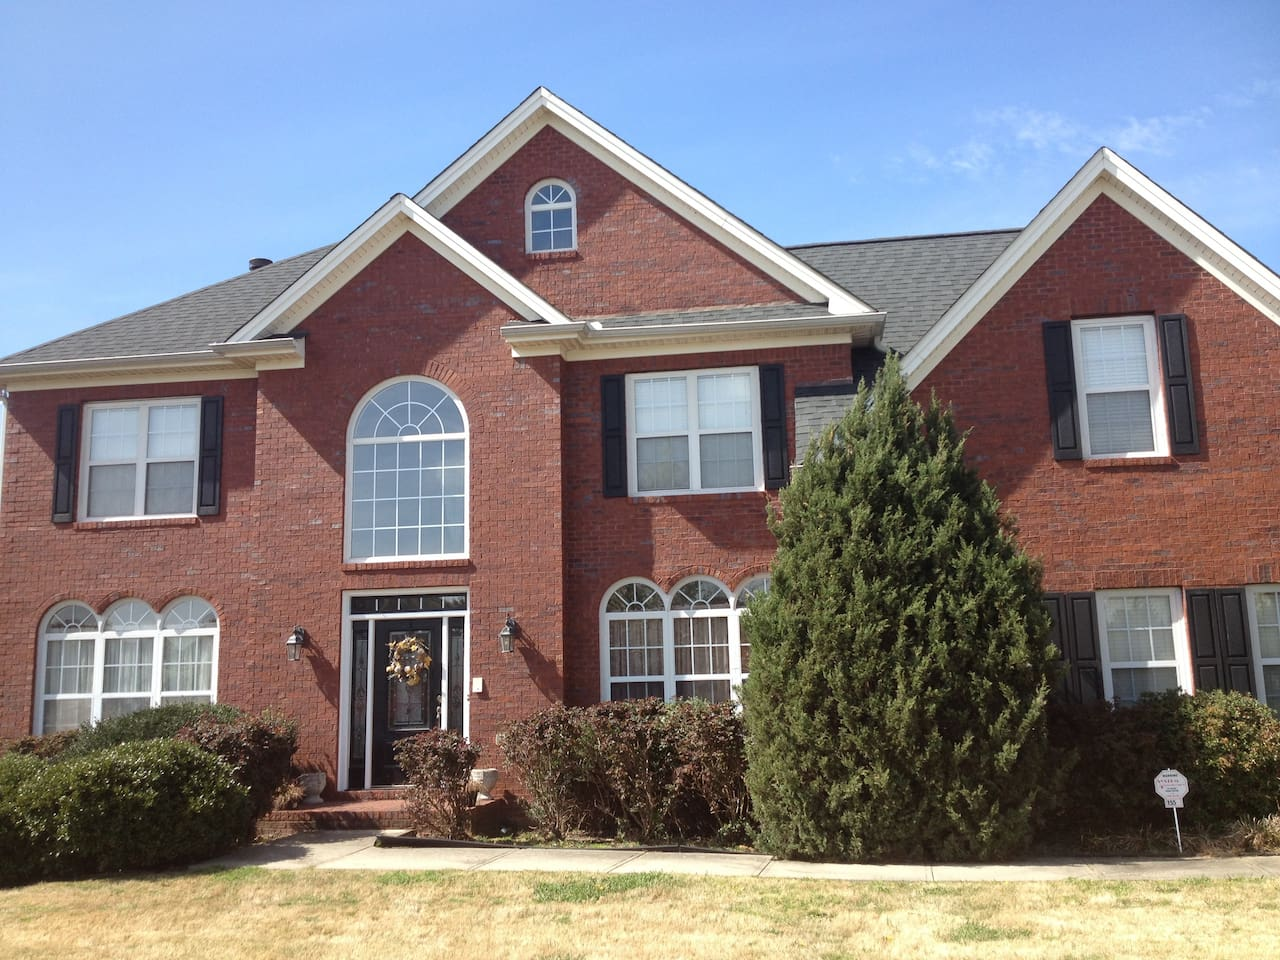 This is a beautiful spacious brick home located in a quiet suburban area of Fayetteville, Georiga.